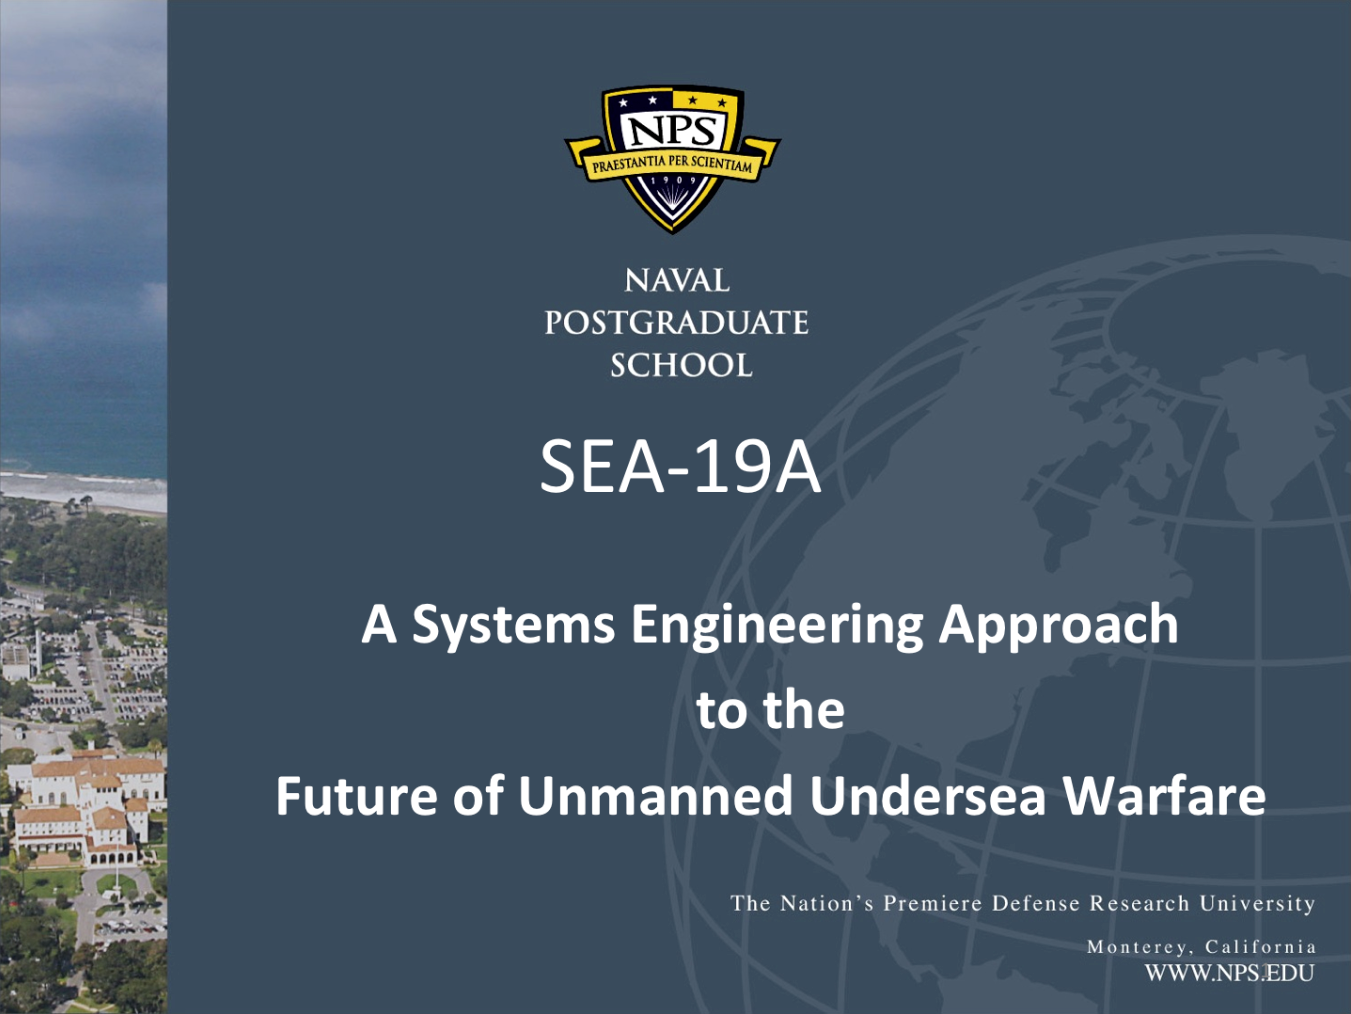 A Systems Engineering Approach to the Future of Unmanned Undersea Warfare